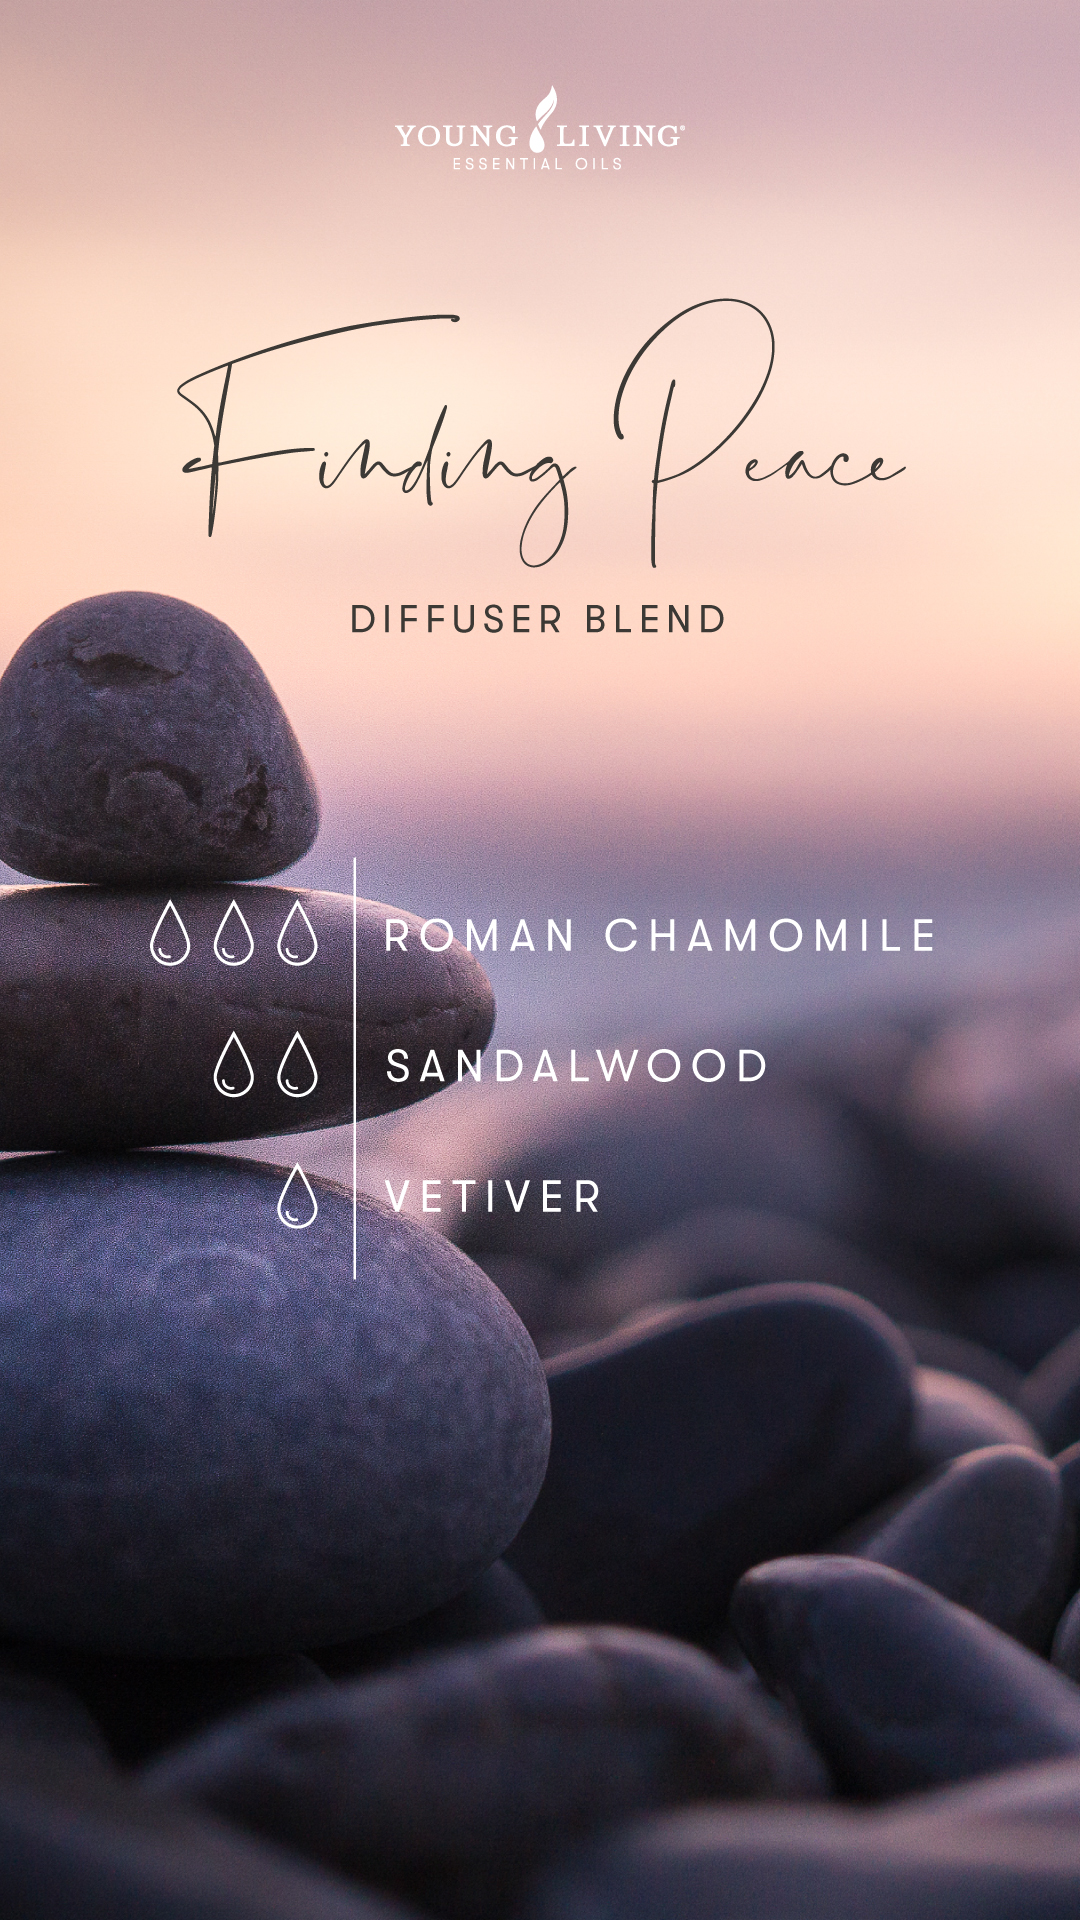 Finding Peace Diffuser Blend